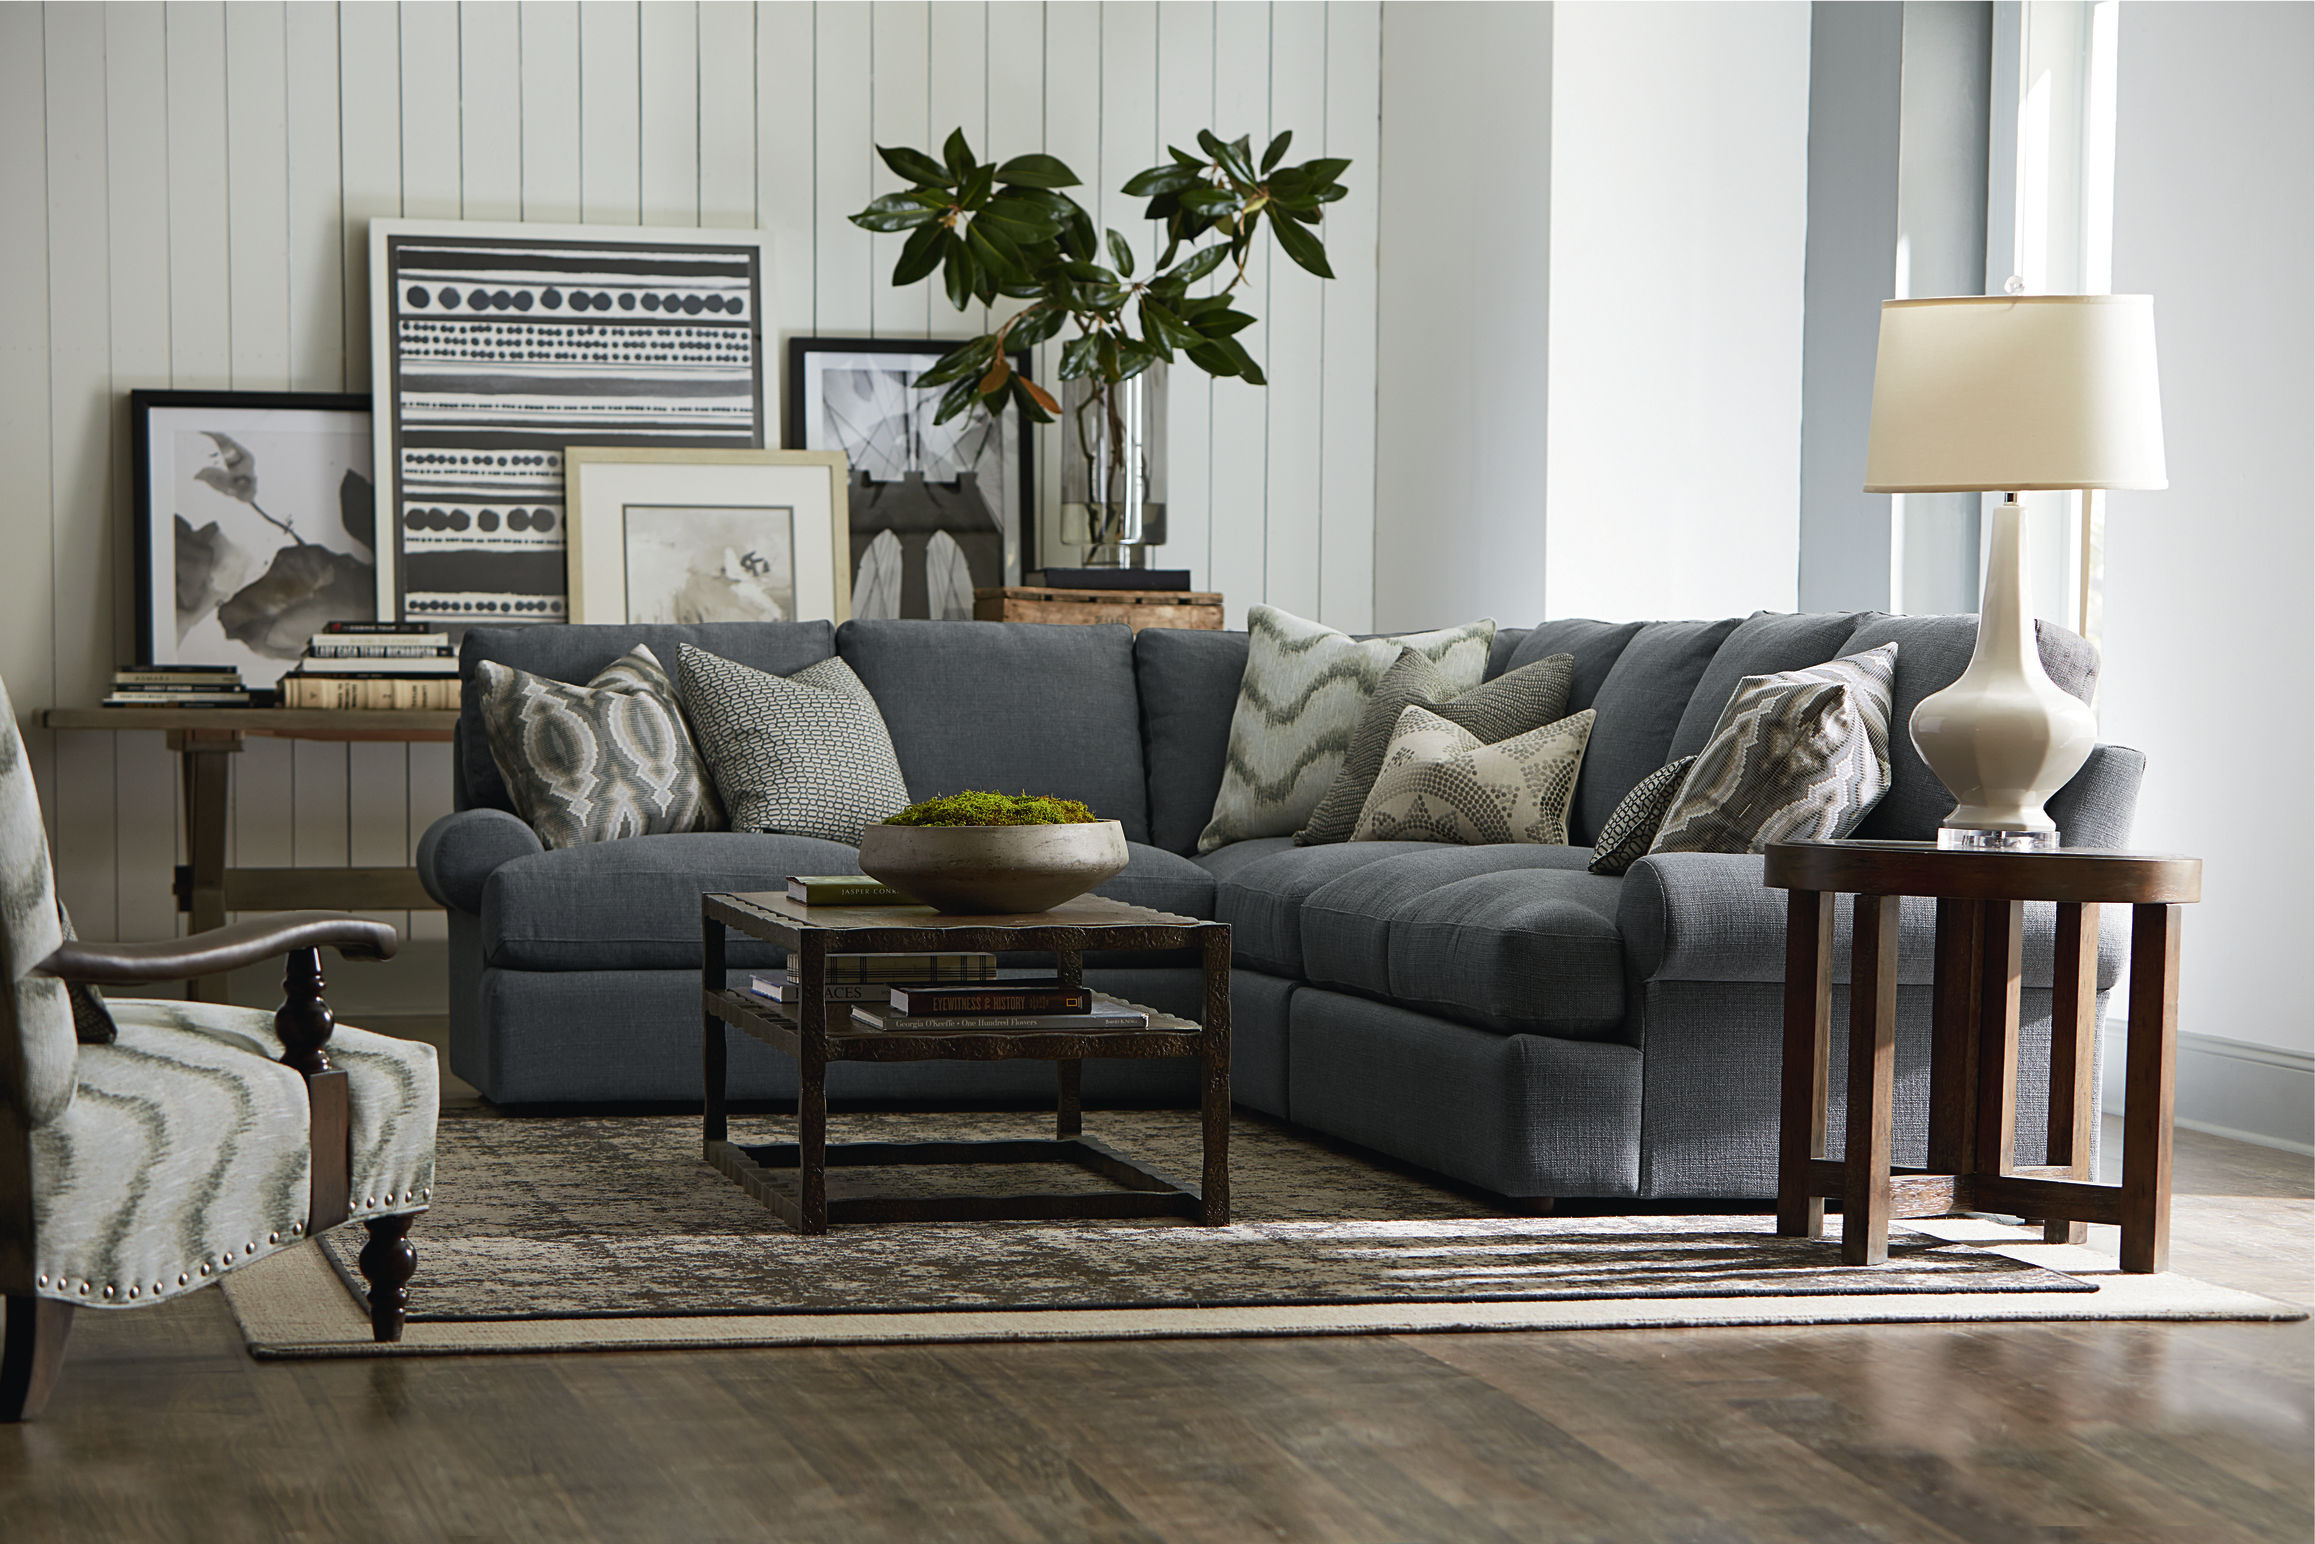 The Anatomy of a Knockout Living Room